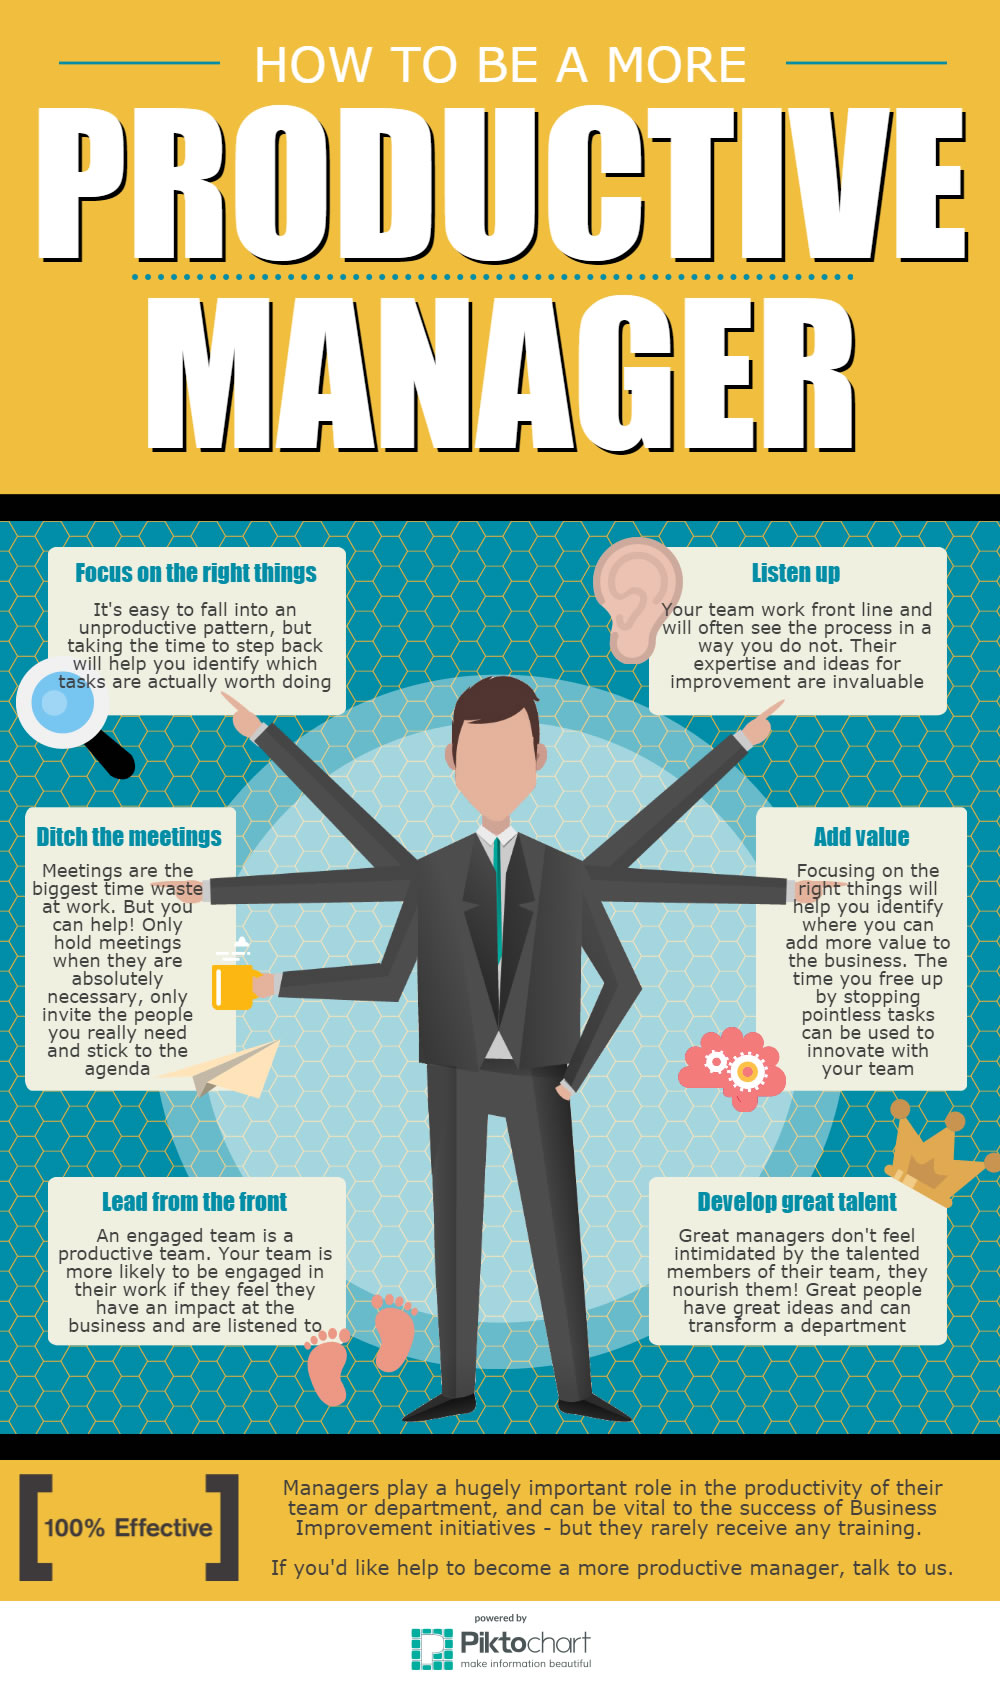 how to be a more productive manager infographic productive manager tips